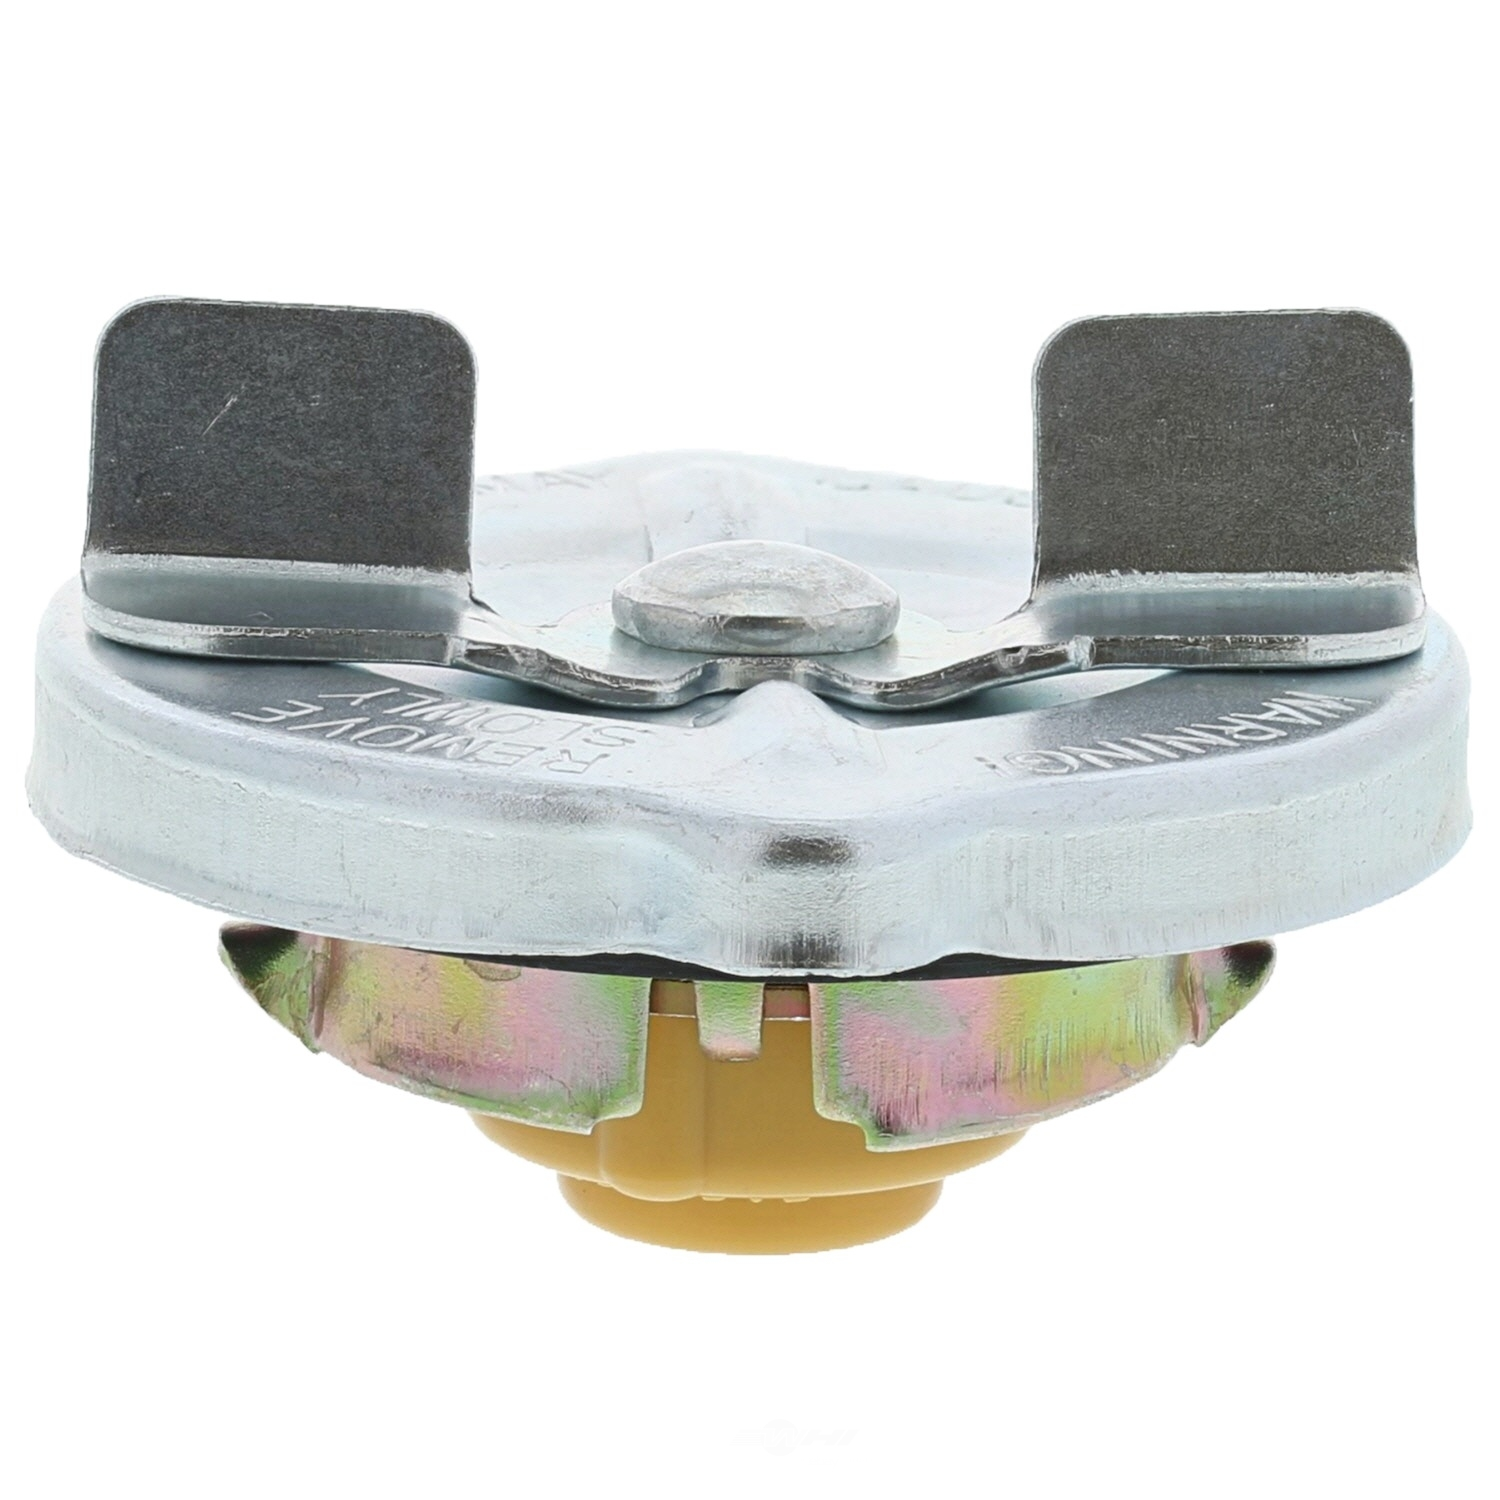 STANT - OE Equivalent Fuel Cap - STN 10646